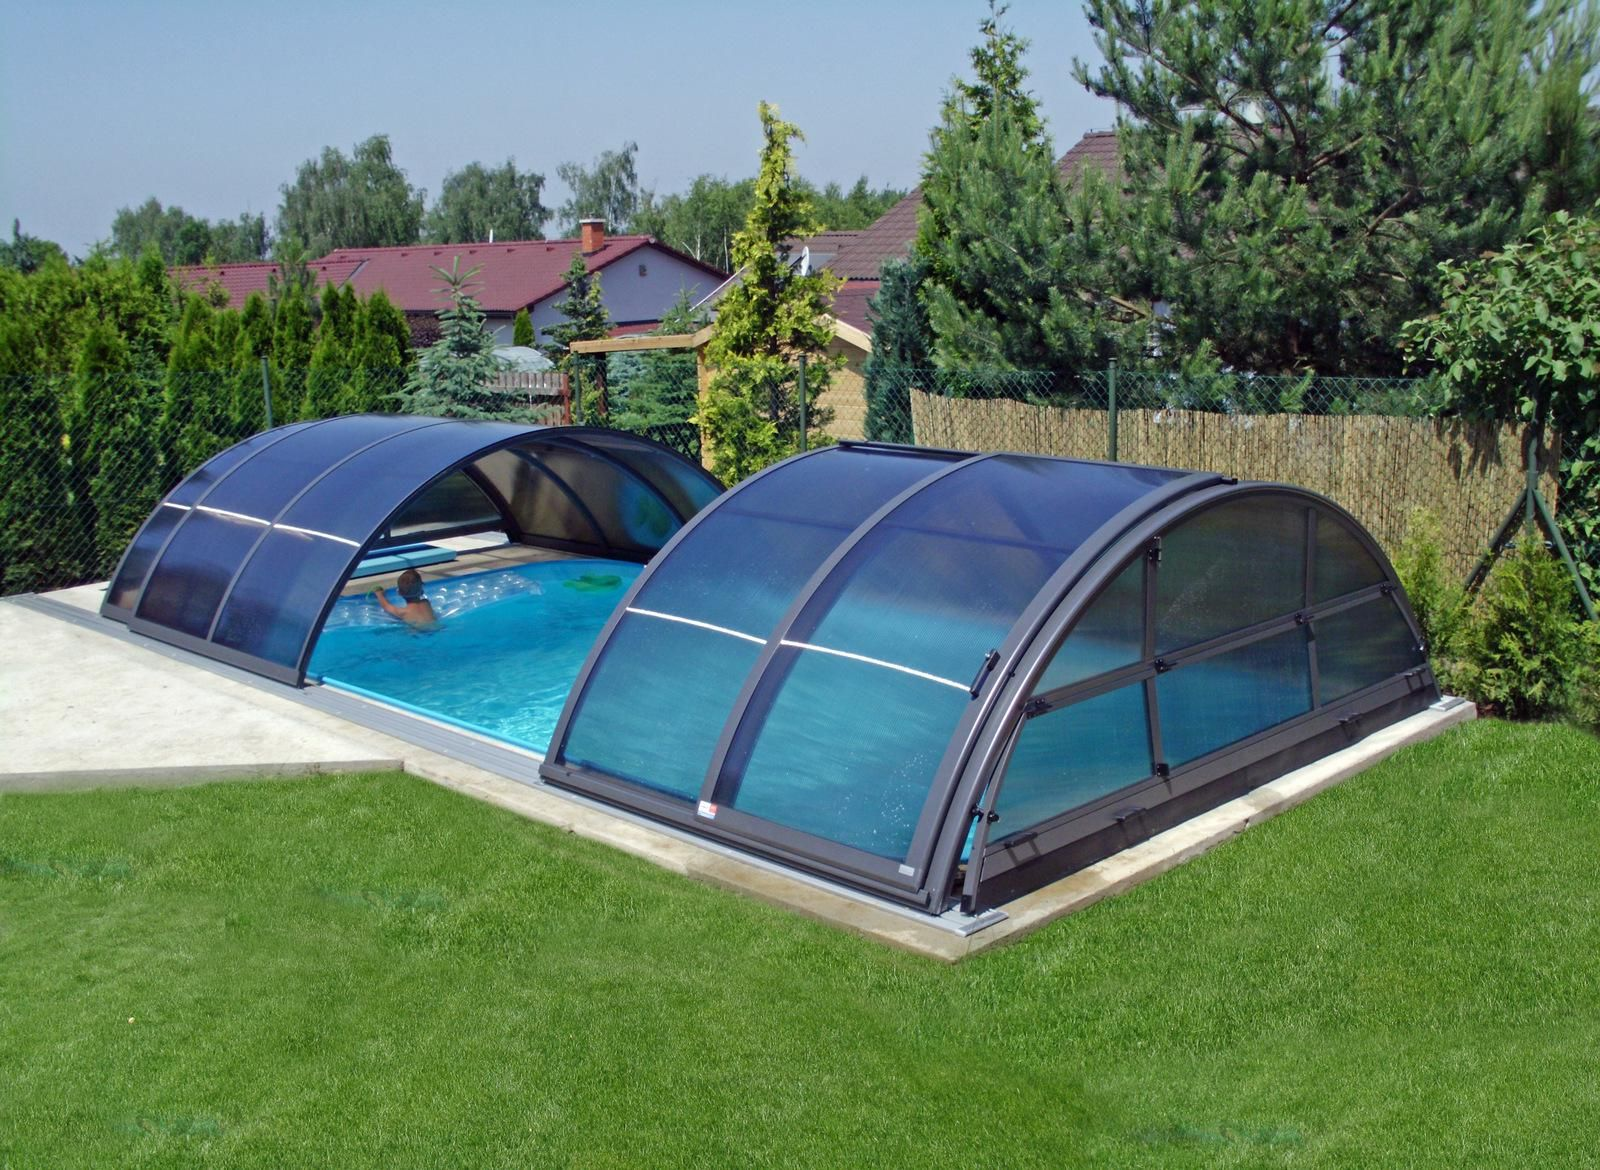 Swiming Pools Anium Cool Pool Cover With Automated Also Galsses And Swimming Besides Inflatables In Ground